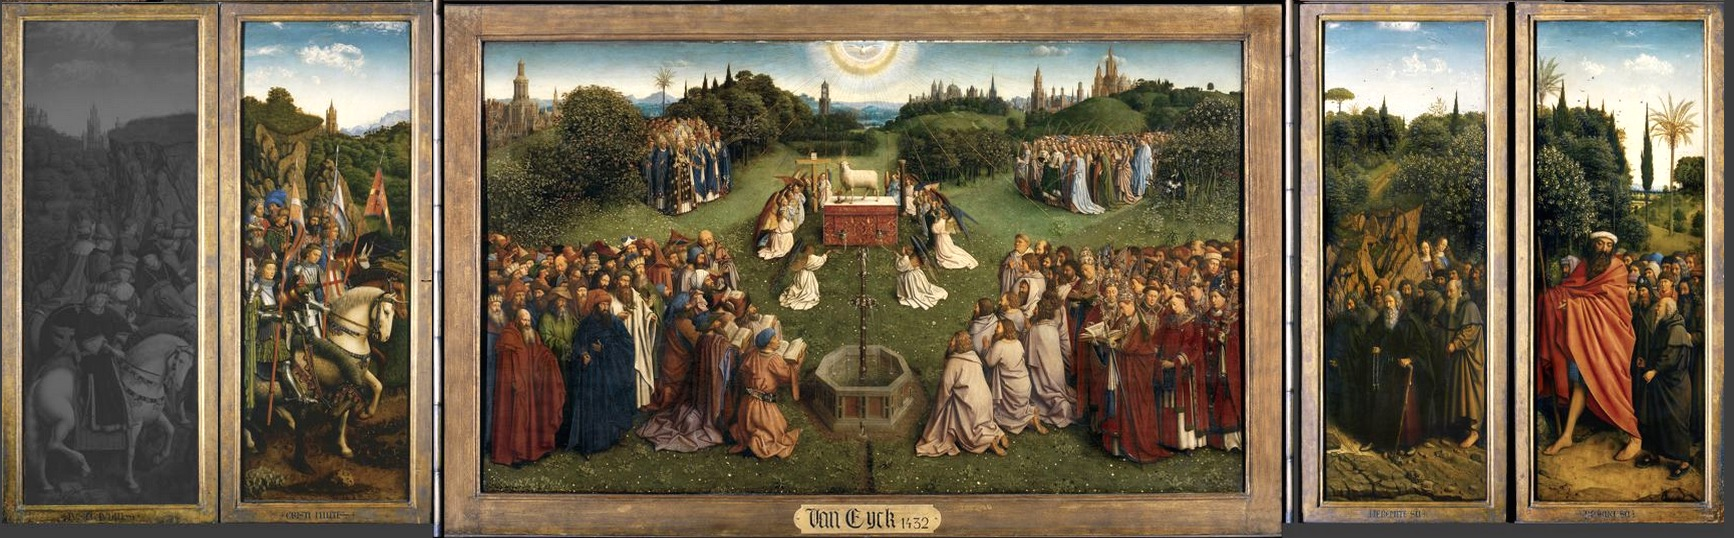 Saint, prophets and others approach the mystic lamb (detail), Jan van Eyck, Ghent Altarpiece, completed 1432, oil on wood, 11 feet 5 inches x 15 feet 1 inch (open), Saint Bavo Cathedral, Ghent, Belgium (photo: Closer to Van Eyck)